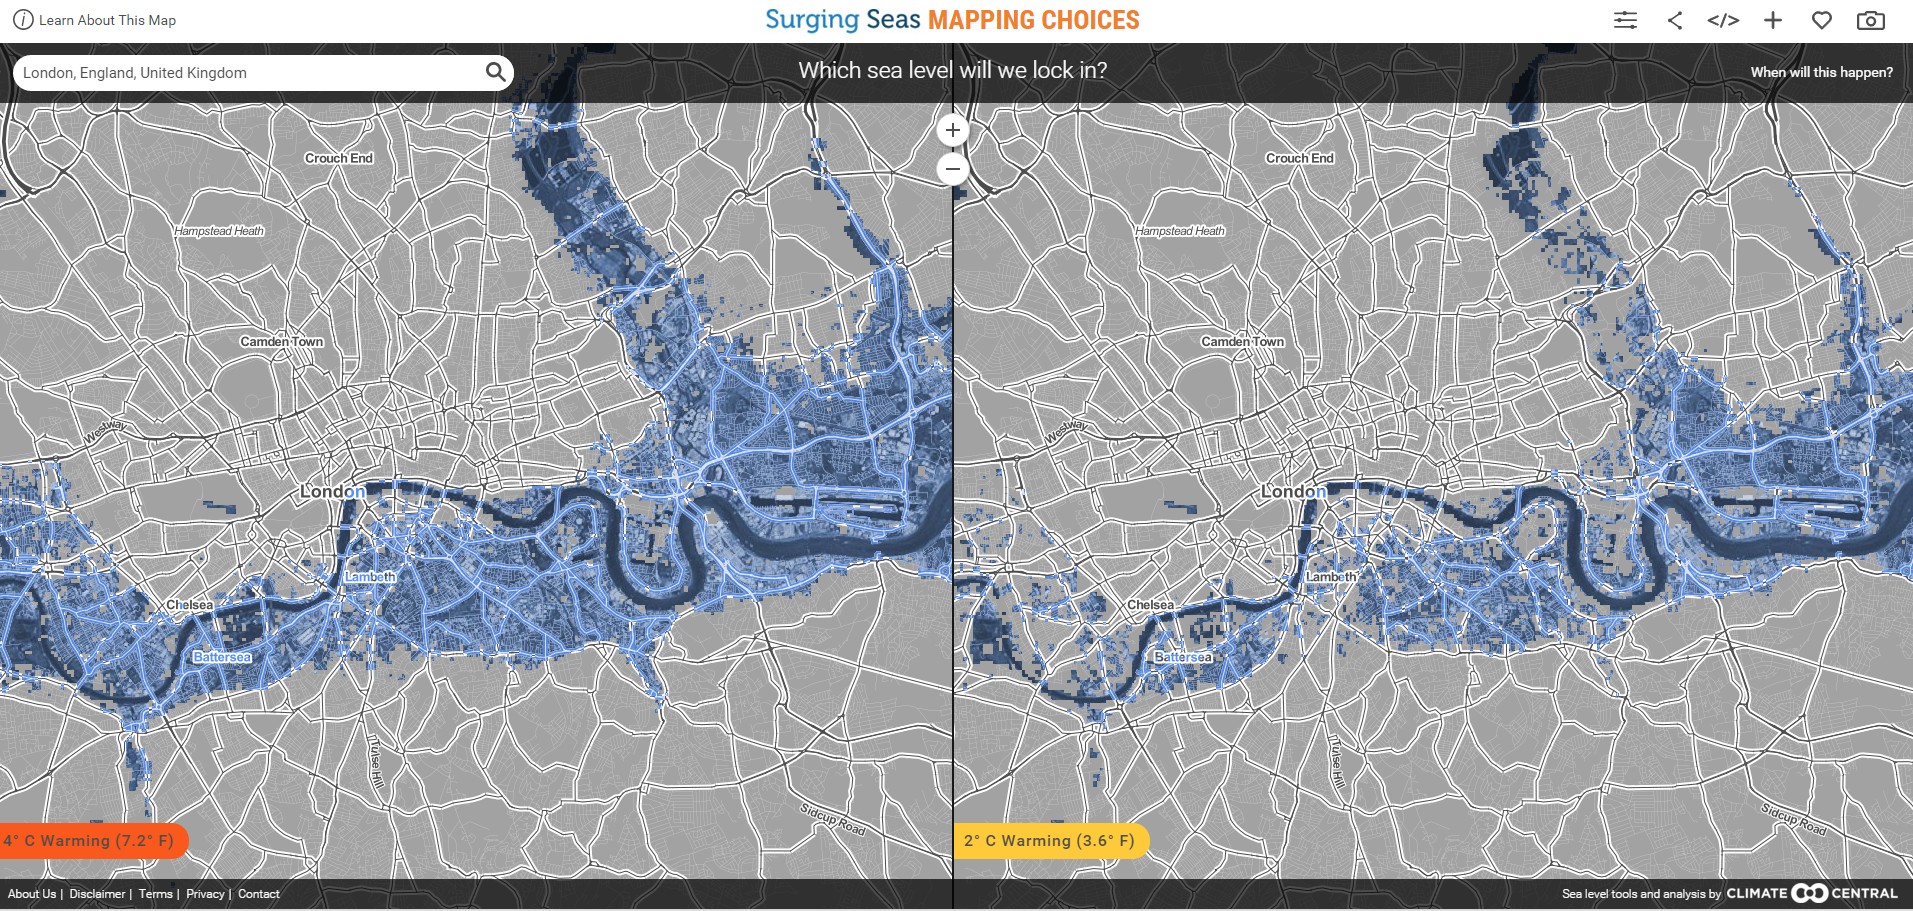 1511B32-london sea level rise predictor map